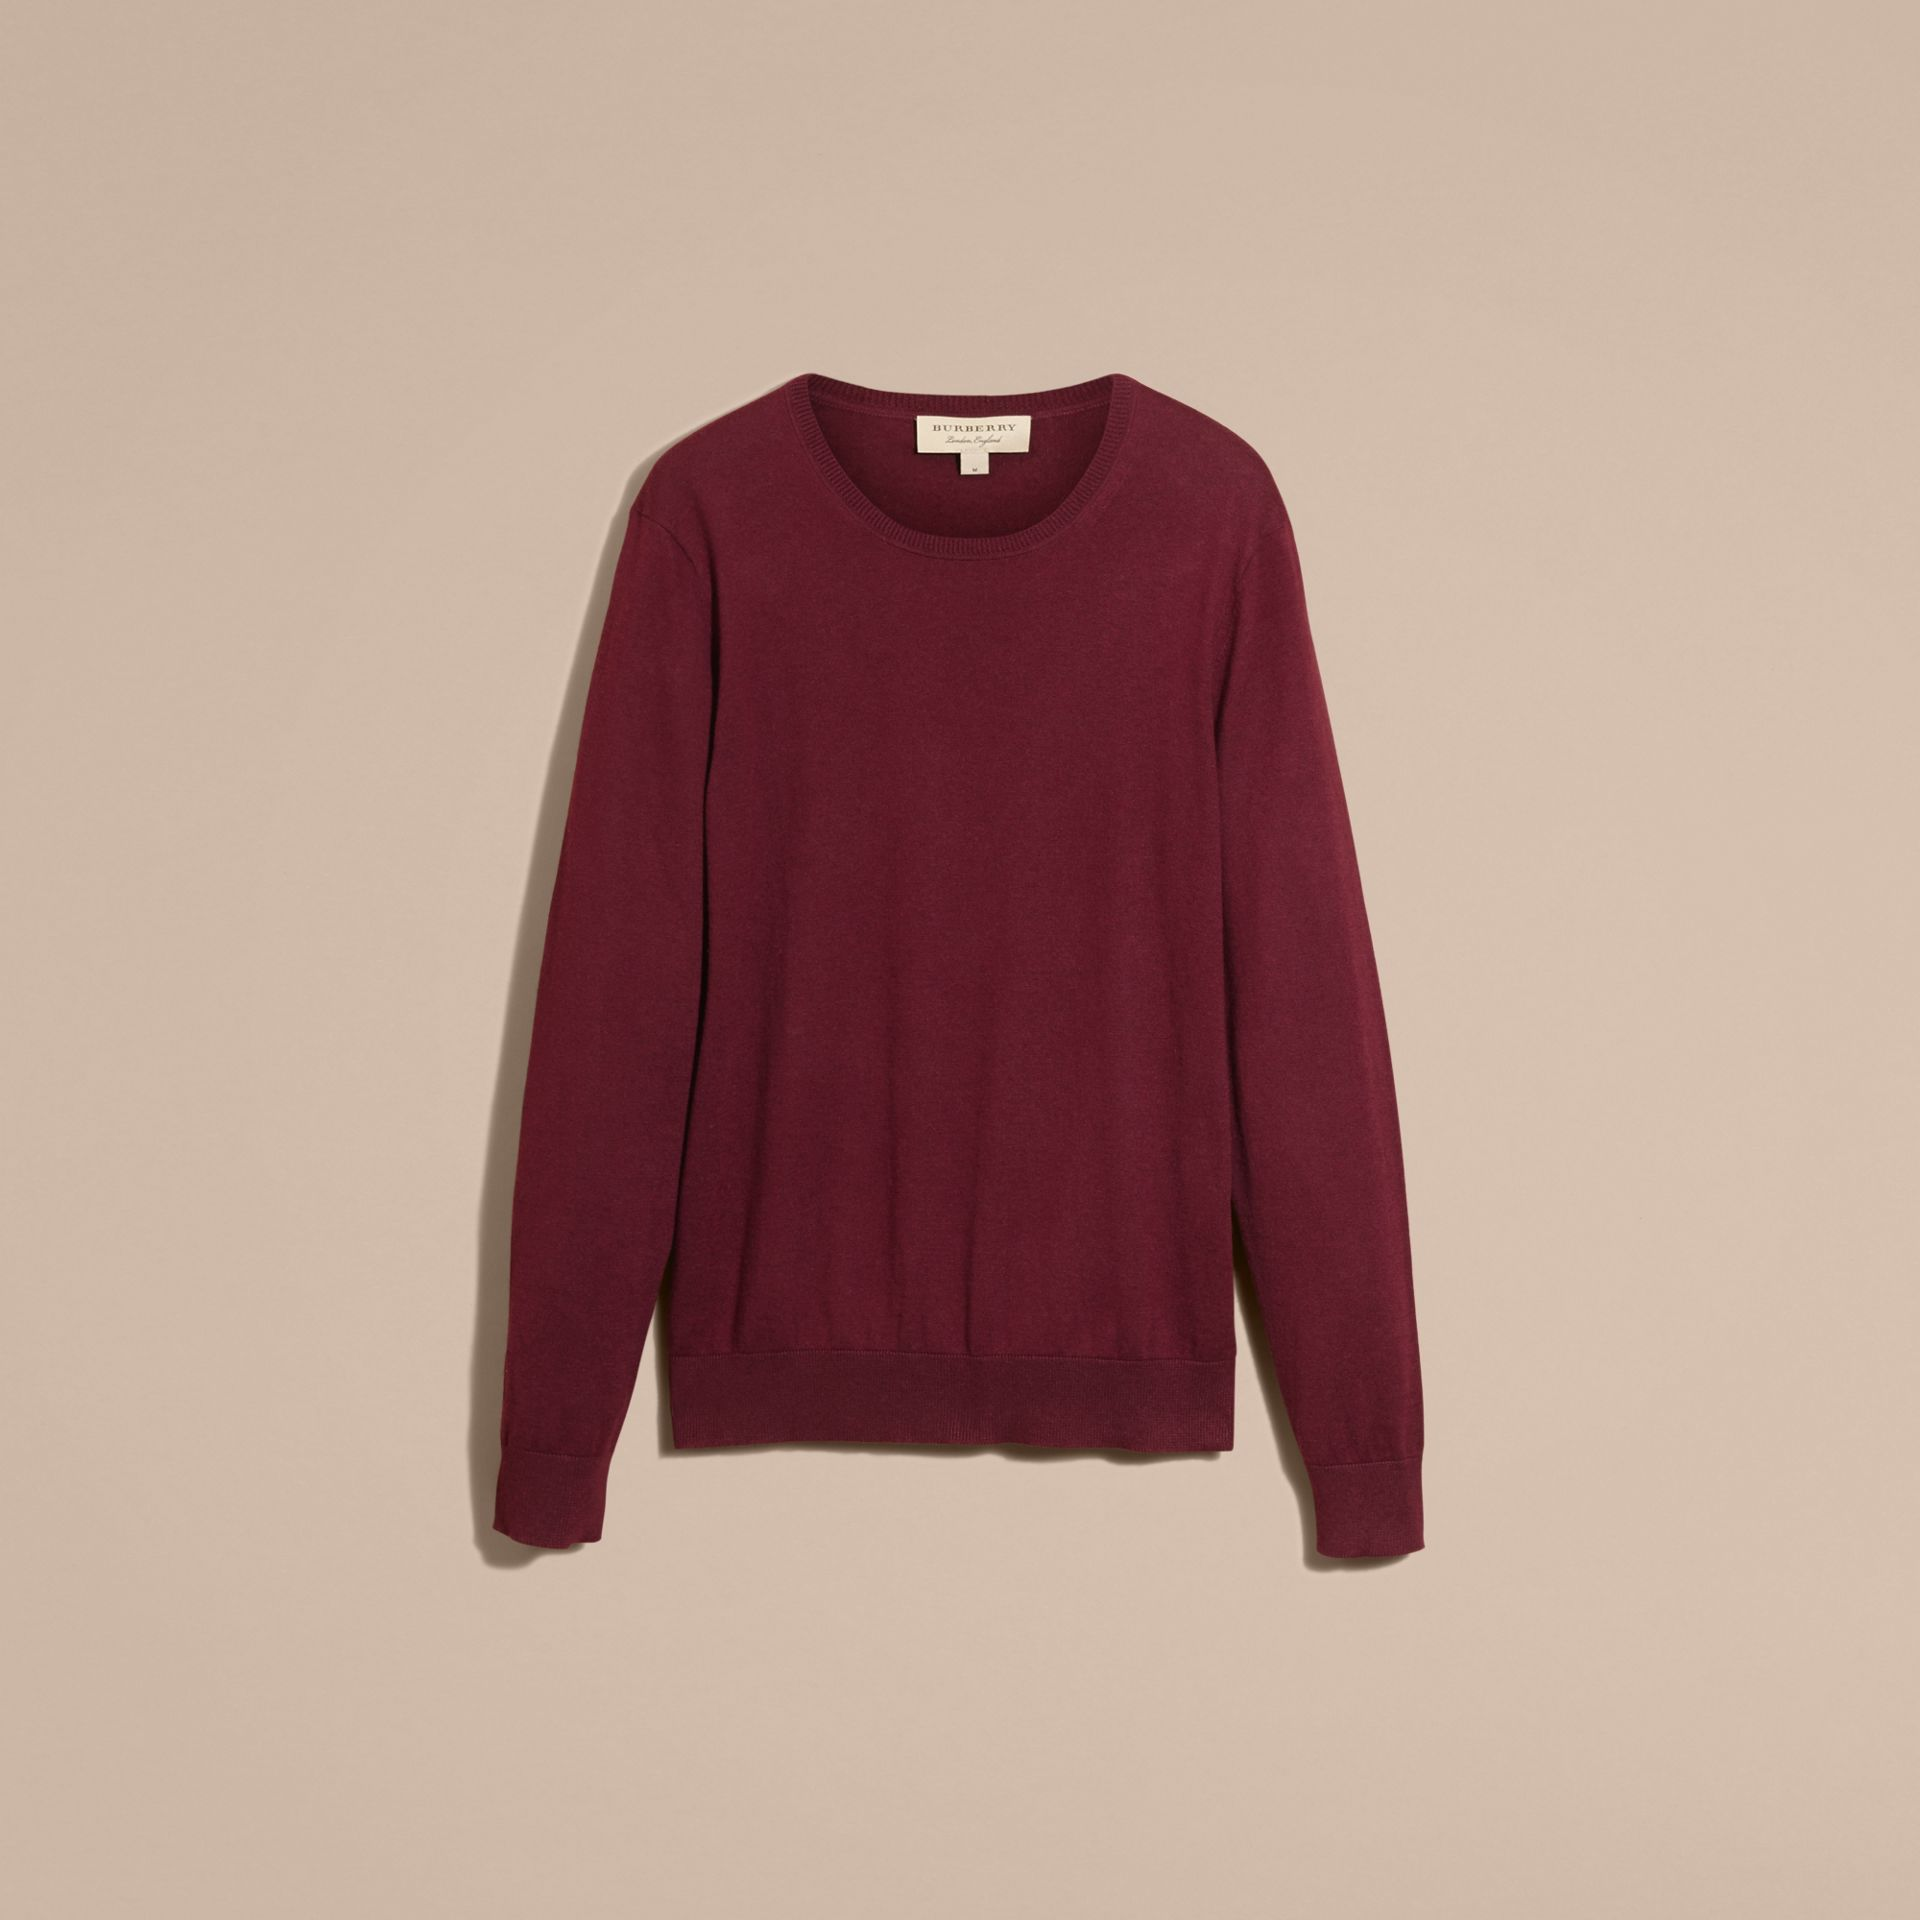 Check Trim Cashmere Cotton Sweater Claret - gallery image 4